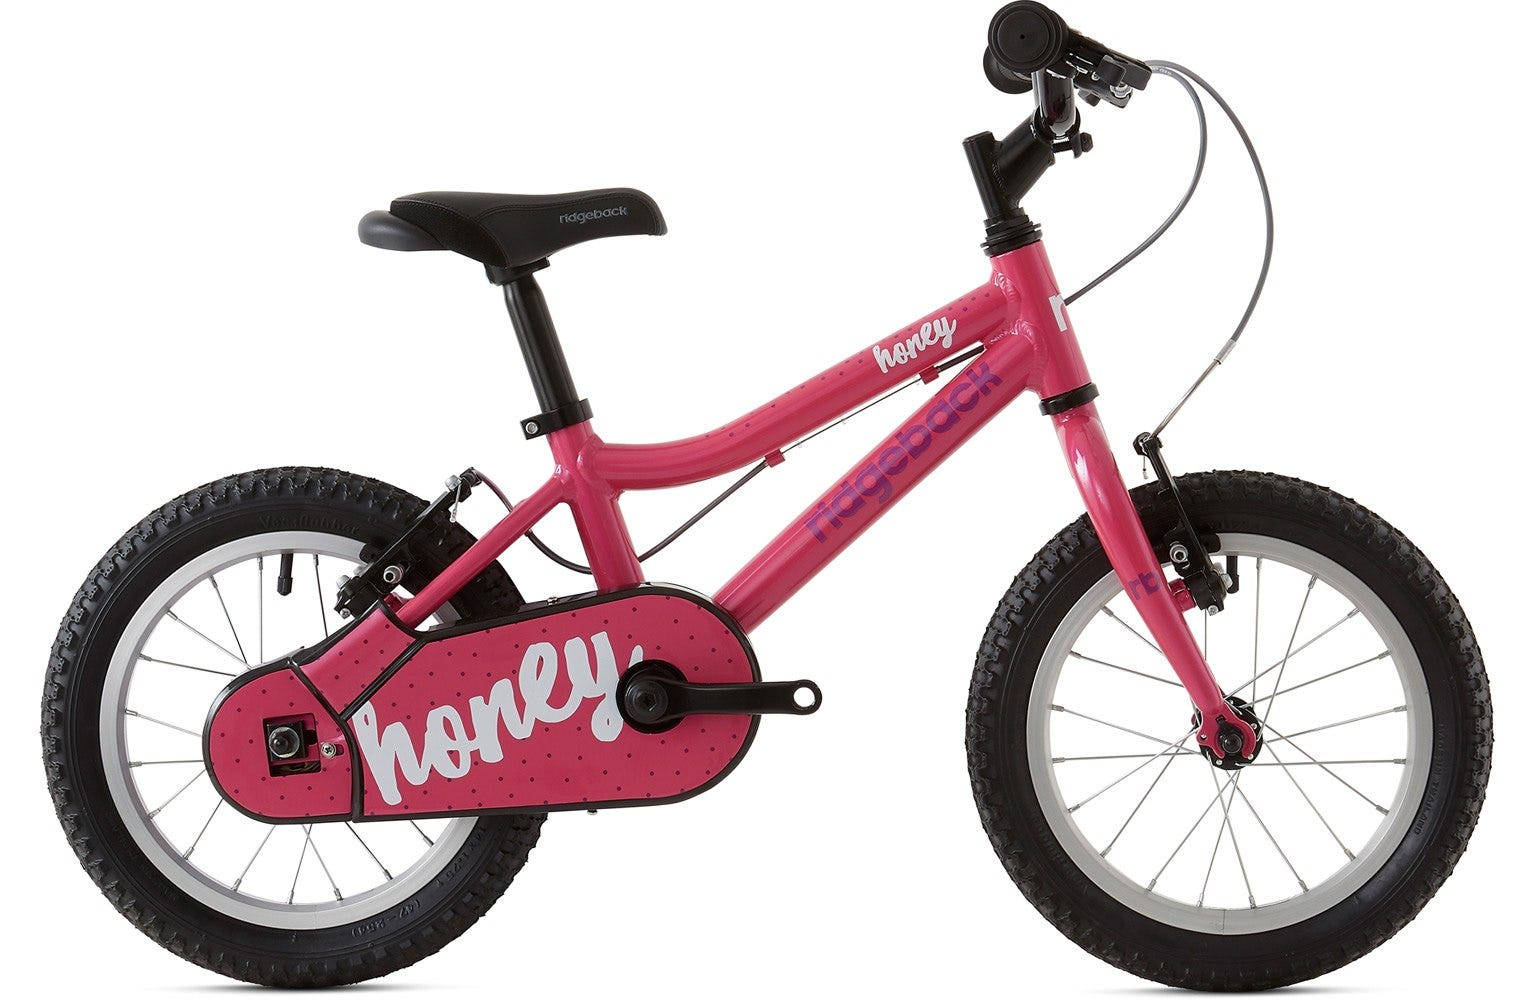 Ridgeback 2020 Honey 14 Inch Wheel Pink